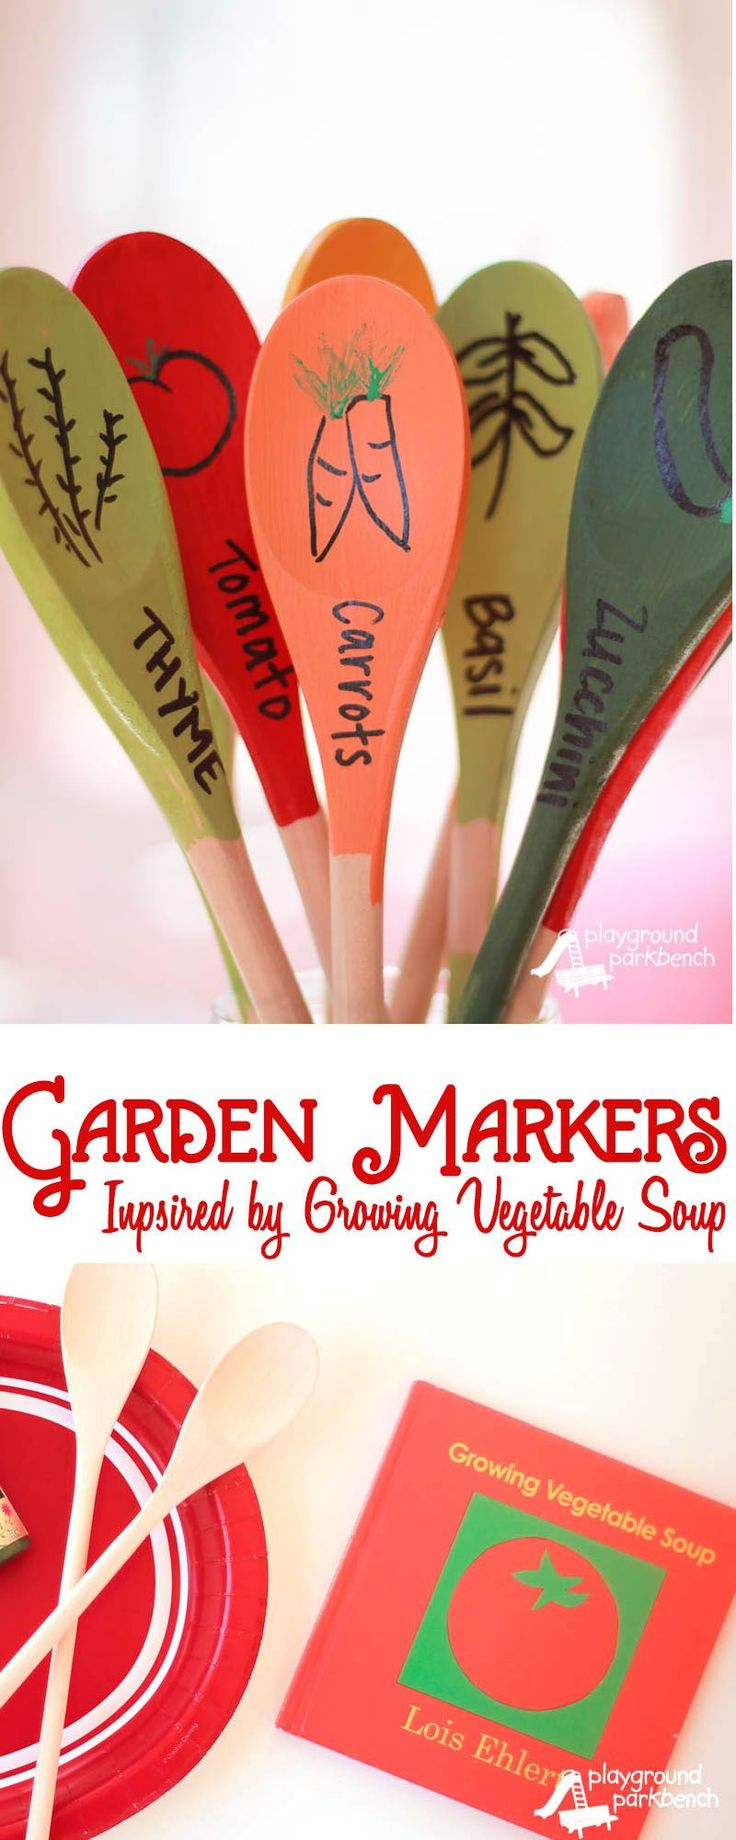 diy garden markers inspired by lois ehlert - Vegetable Garden Ideas For Spring